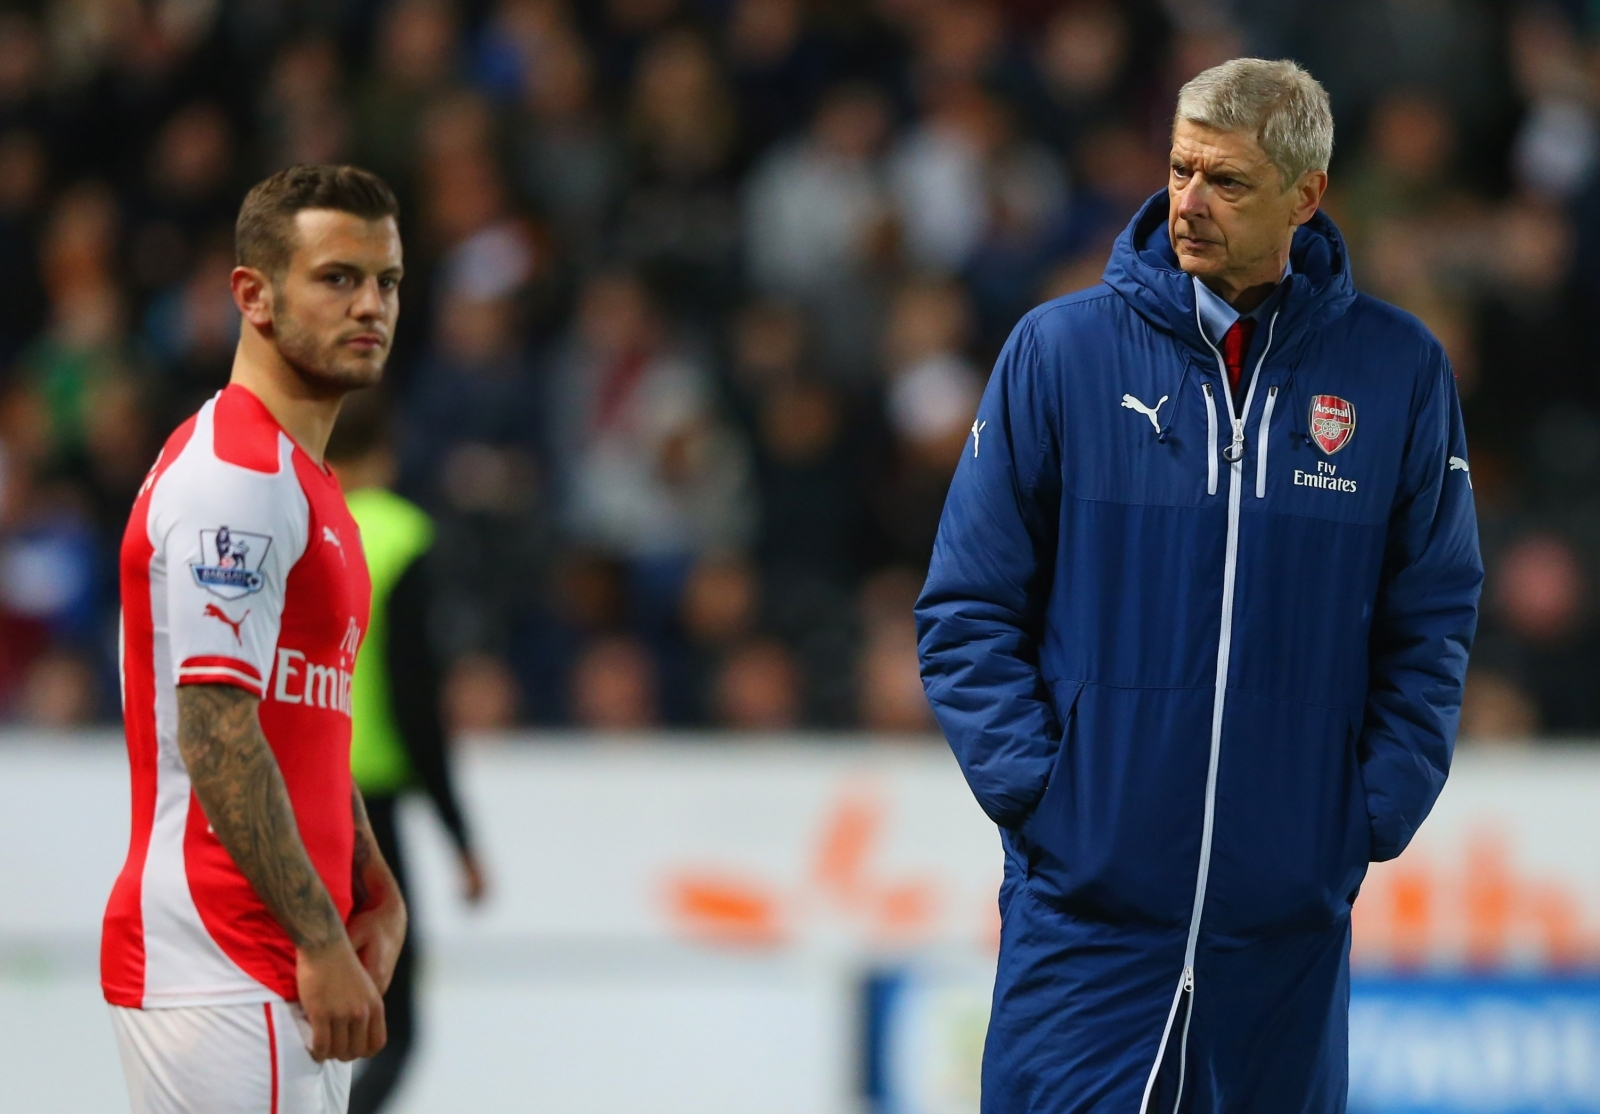 https://d.ibtimes.co.uk/en/full/1631223/jack-wilshere-arsene-wenger.jpg